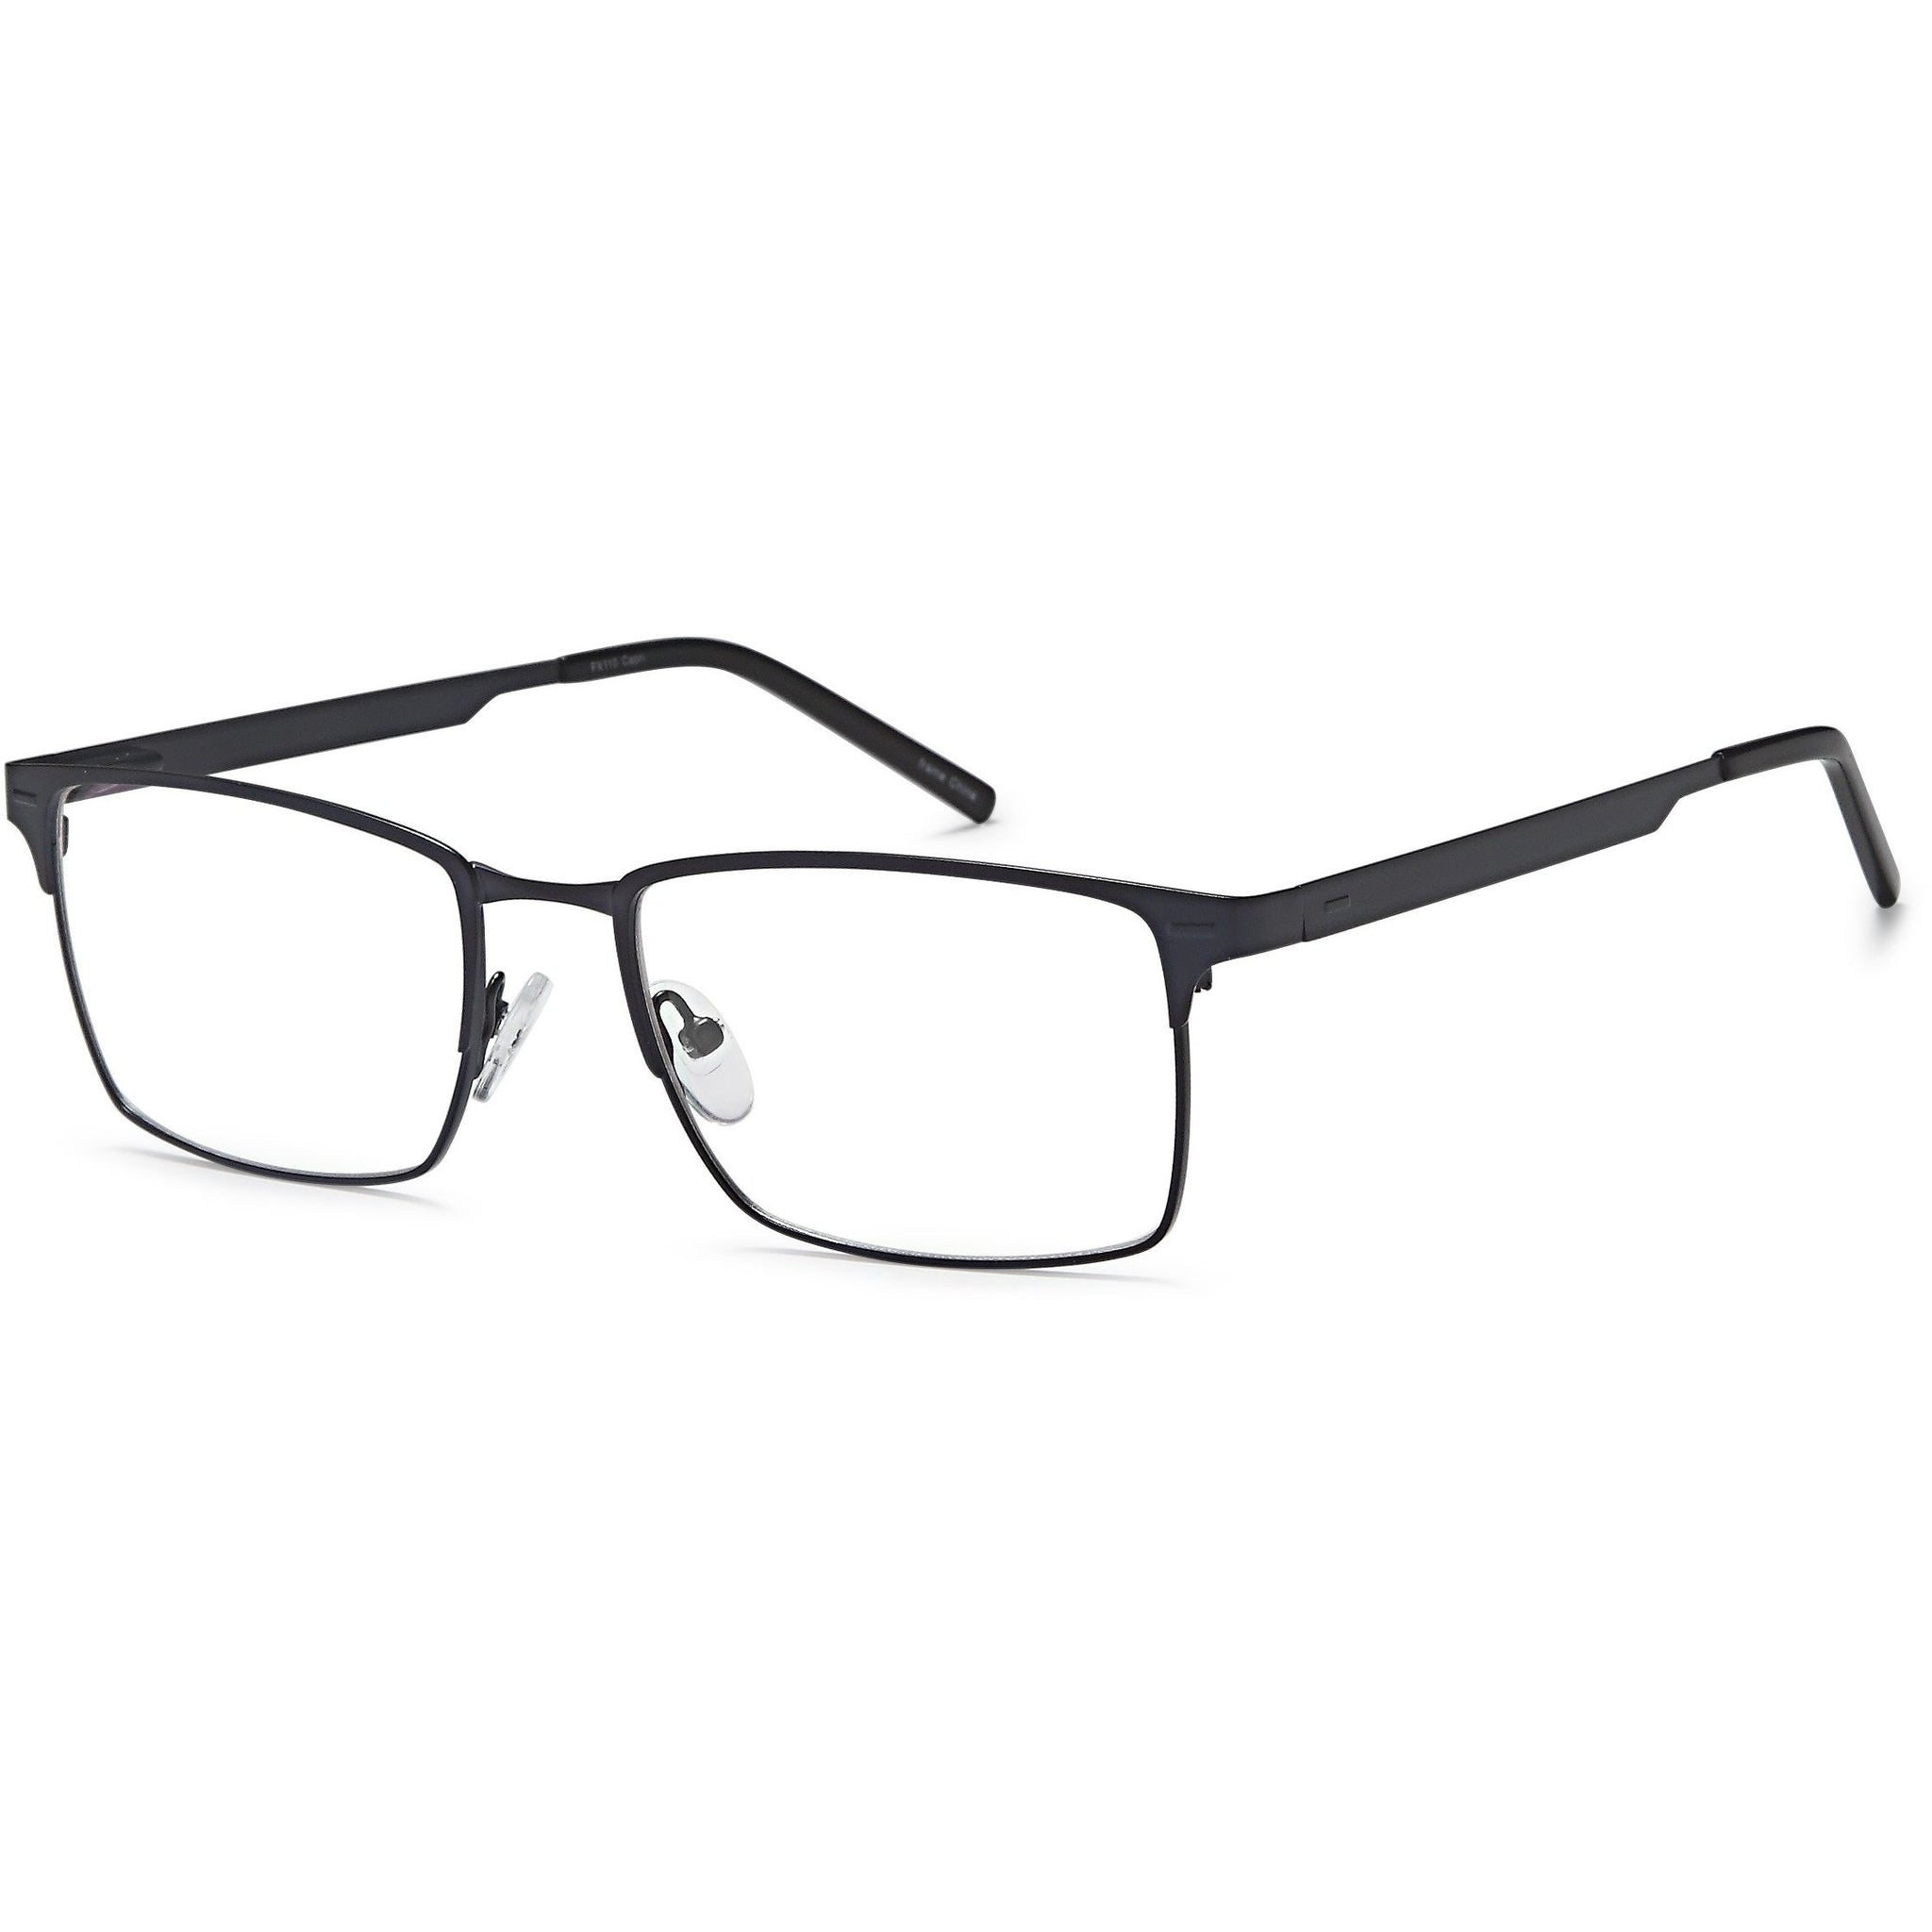 Titanium Prescription Glasses FX 110 Eyeglasses Frame